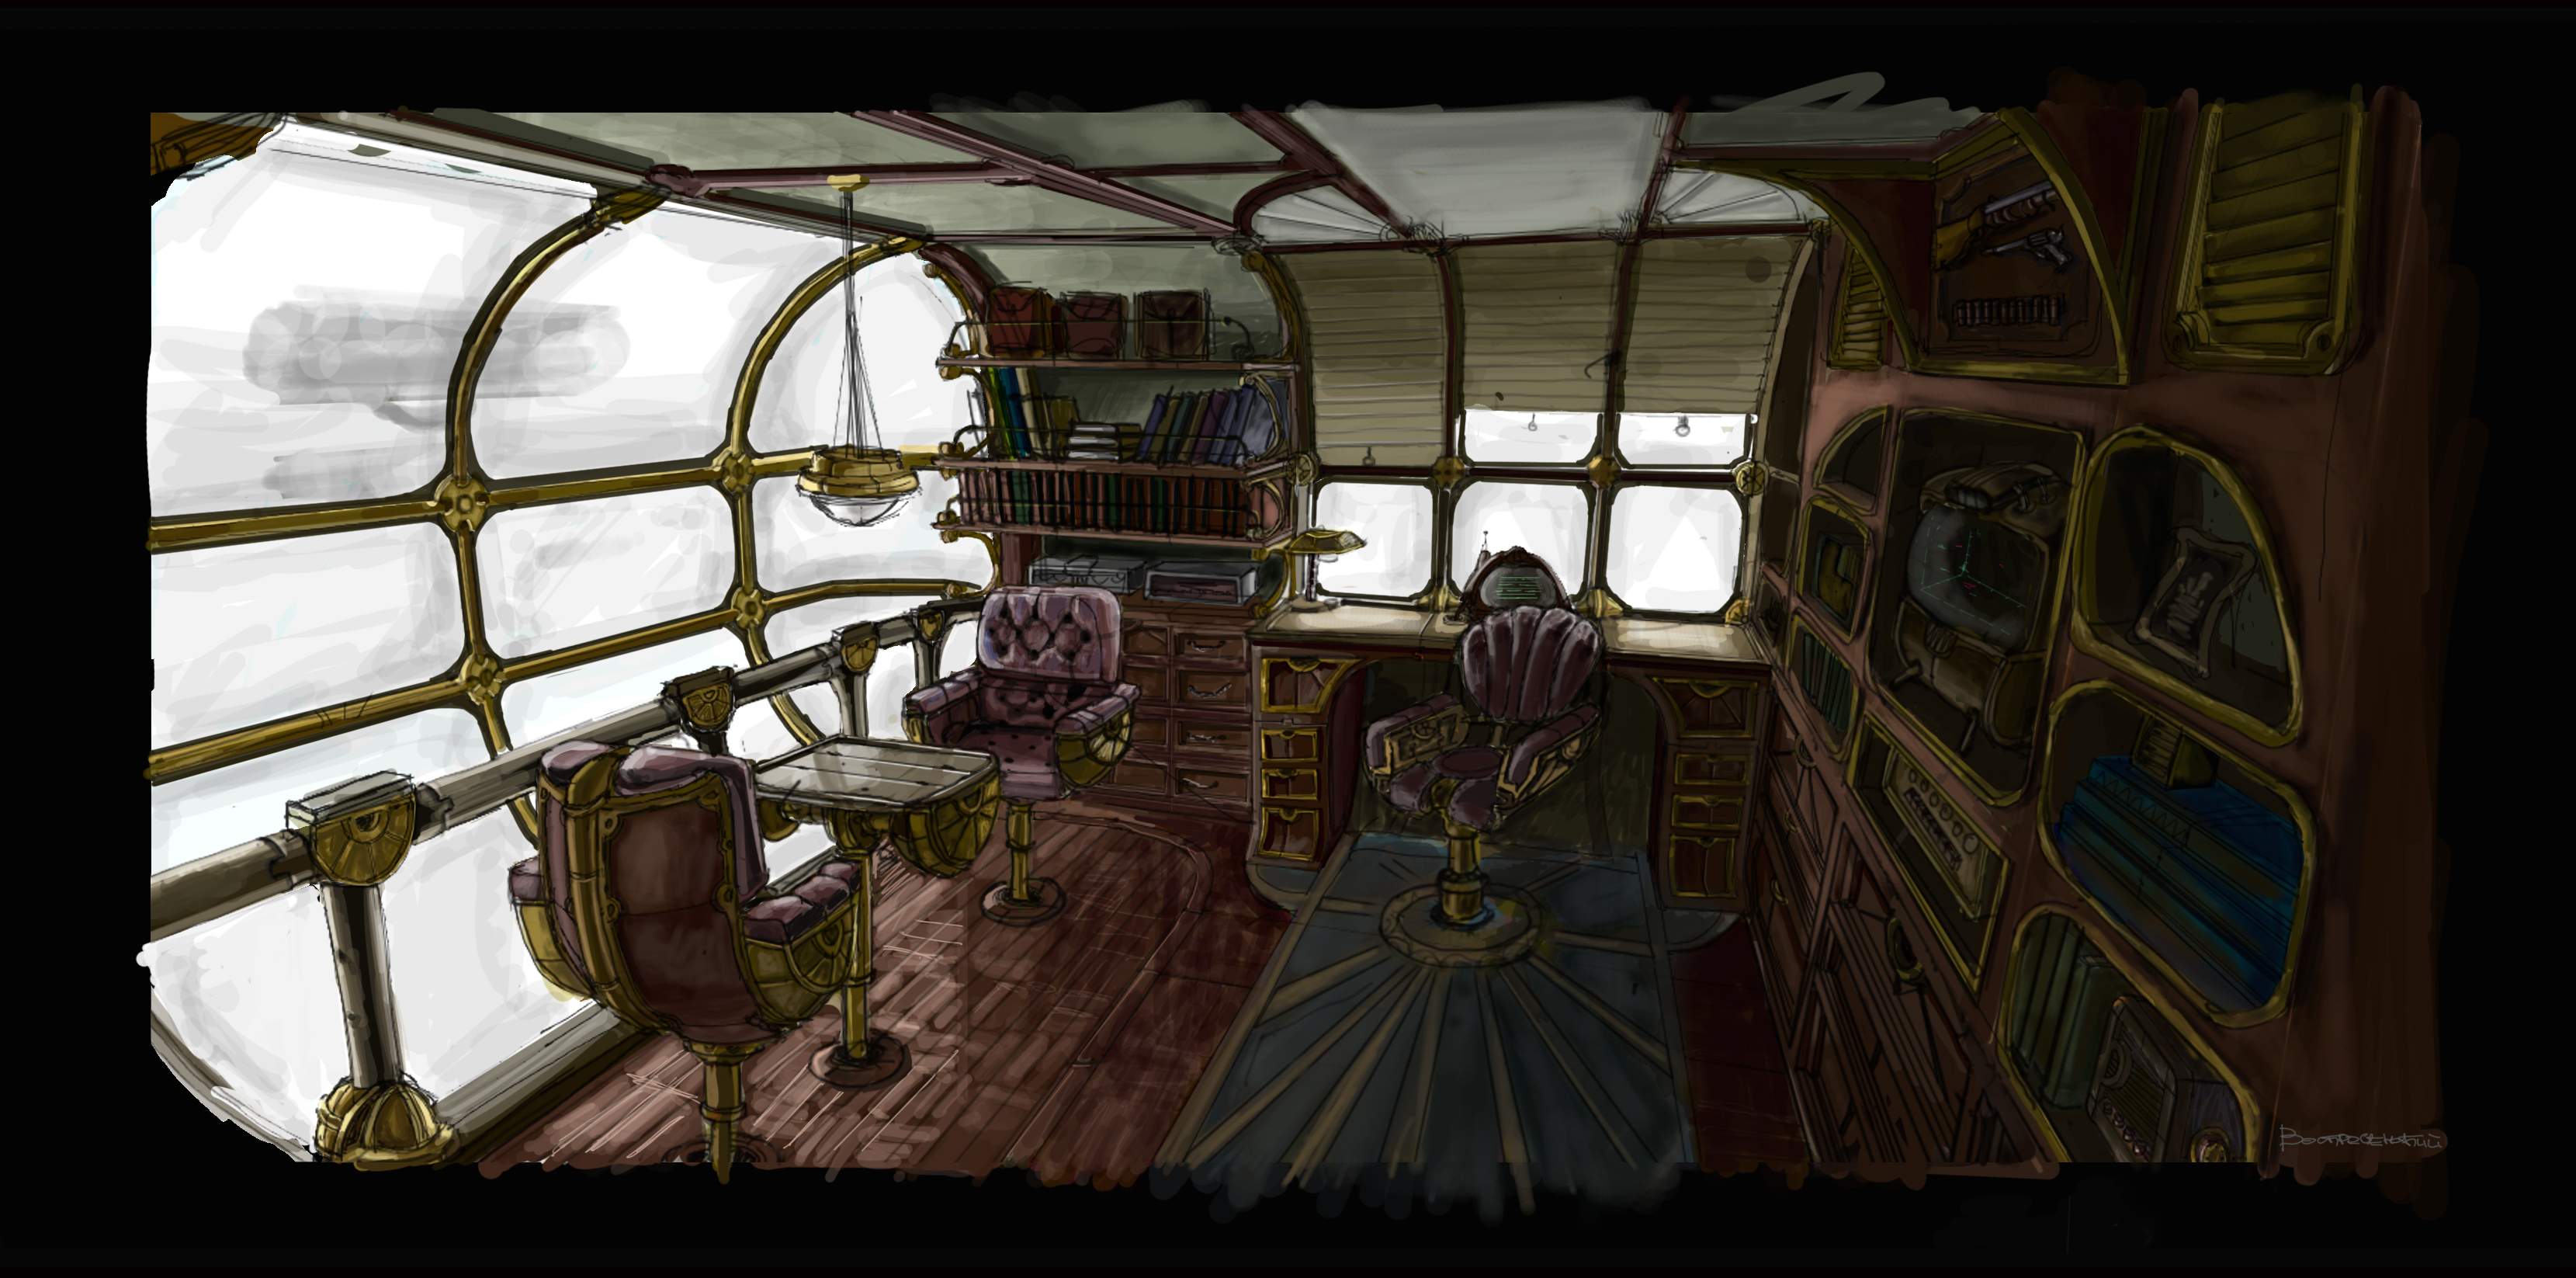 Steam airship interior by voskresenski on deviantart Steampunk interior